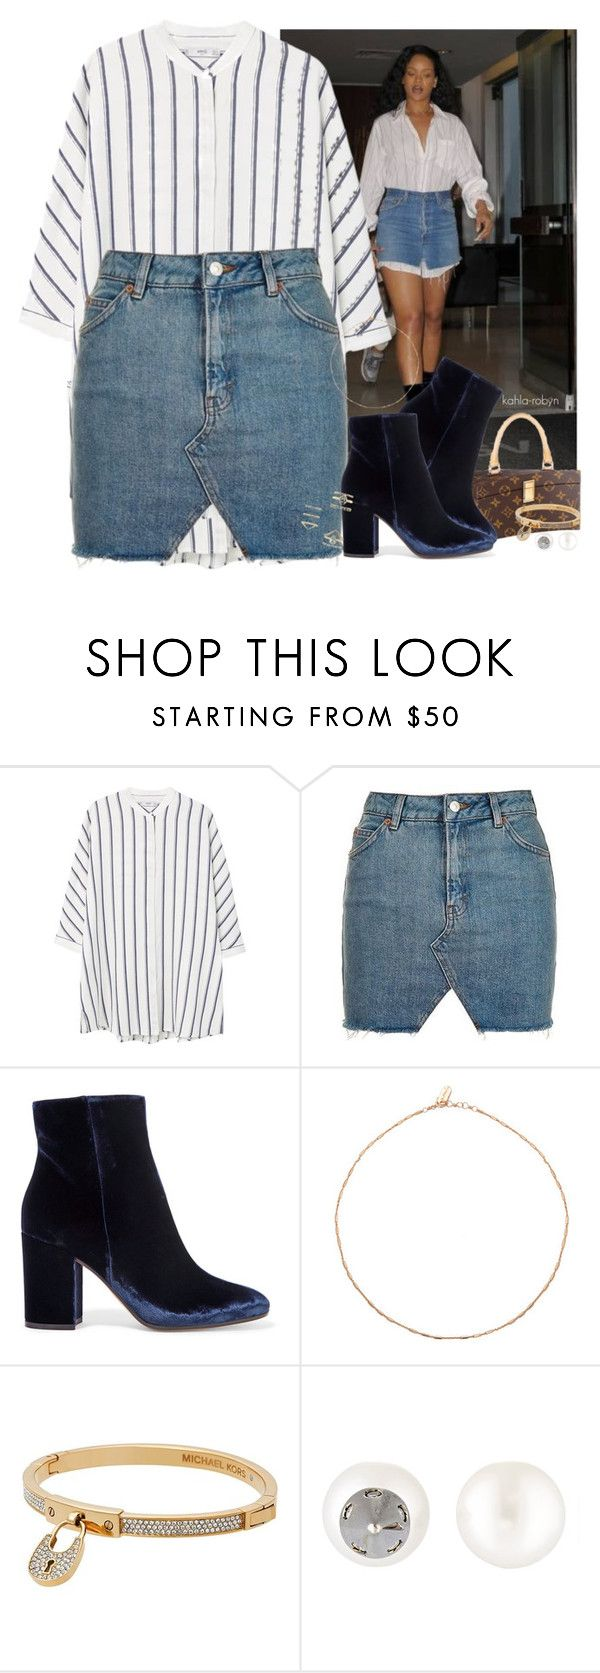 """""""Outfit Appreciation: Rihanna 11  07 16"""" by kahla-robyn ❤ liked on Polyvore featuring MANGO, Topshop, Louis Vuitton, Gianvito Rossi, Michael Kors, Ana Khouri and Forever 21"""